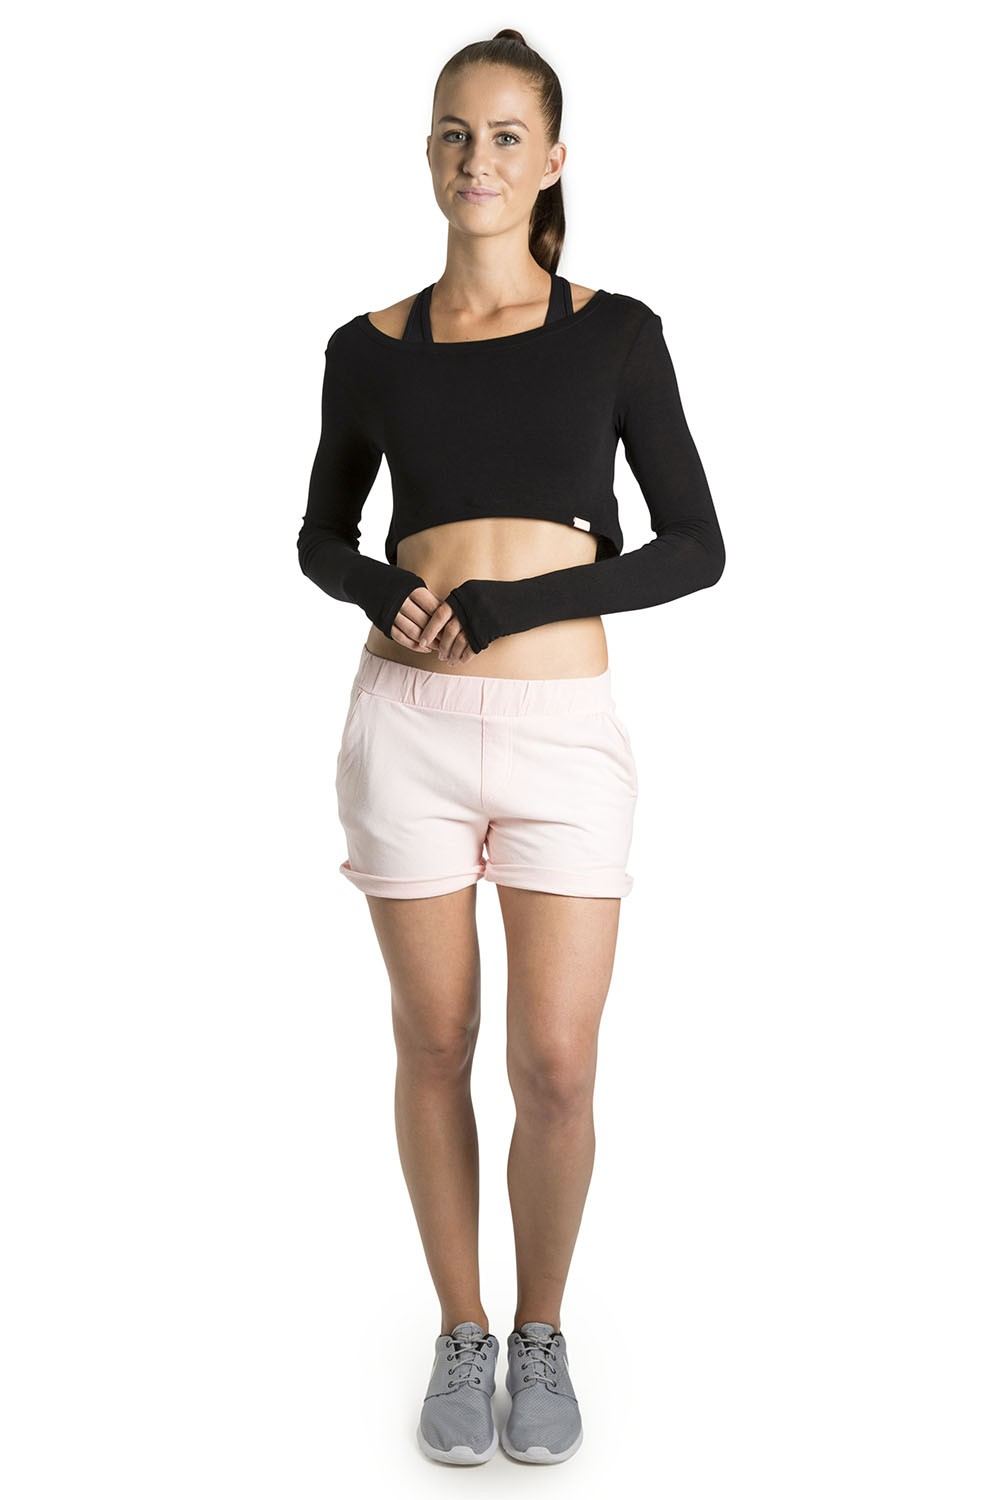 Knit Long Sleeve Crop Top Women's Tops